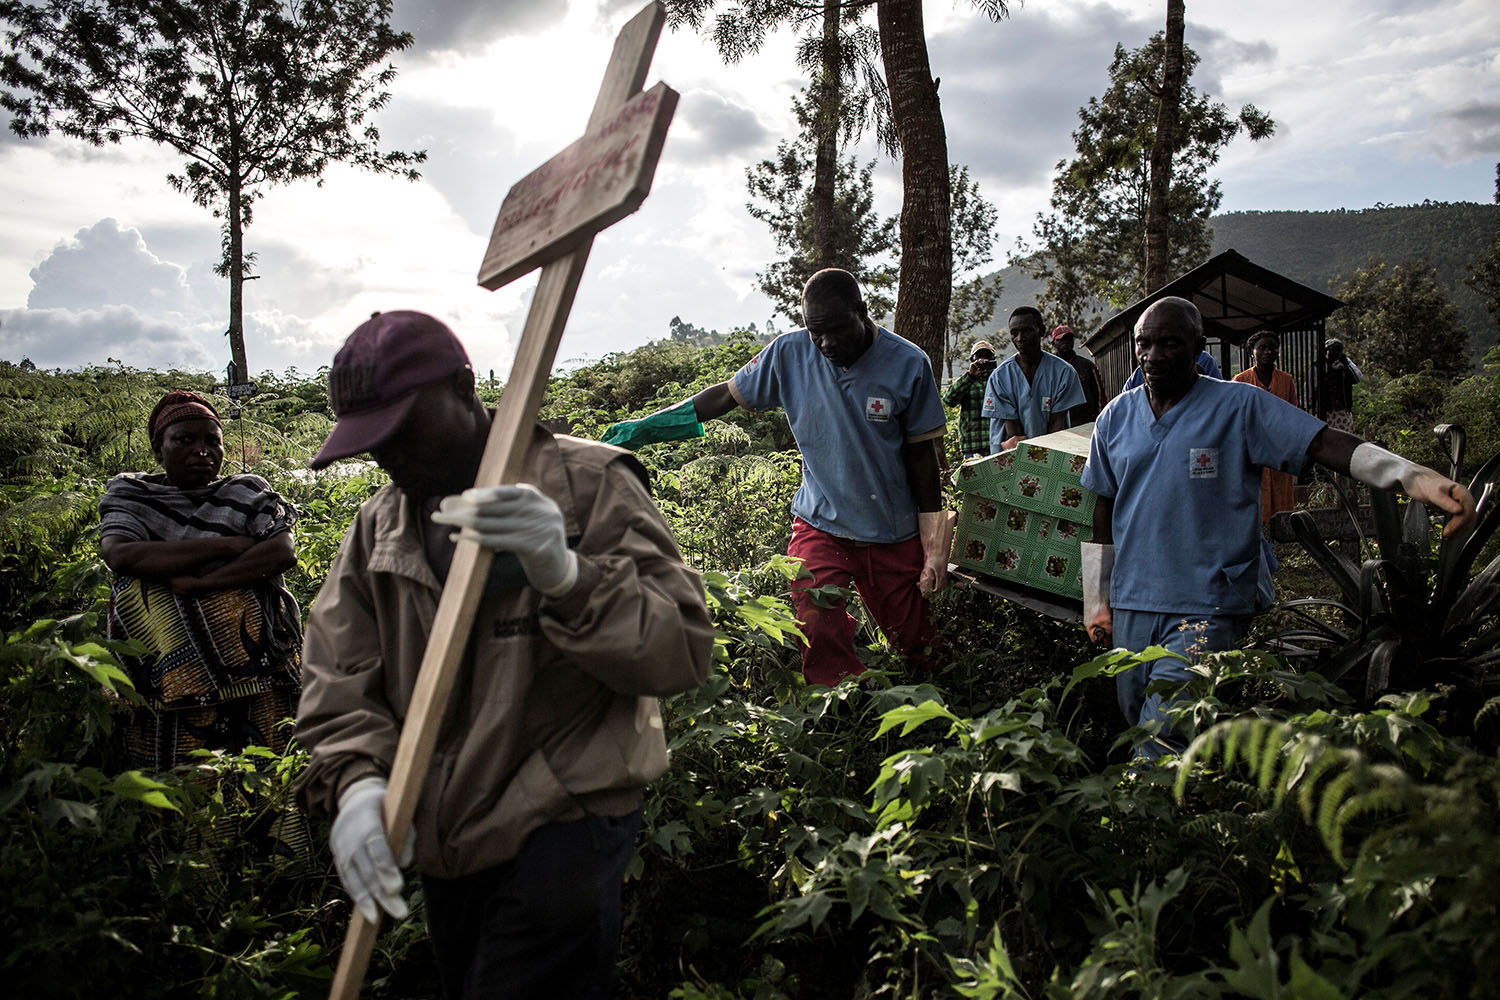 Health workers carry a coffin containing a victim of the Ebola virus in Butembo, the Democratic Republic of Congo, on May 16. The city is at the epicenter of the Ebola crisis with the toll of this outbreak at more than 1,000 deaths. JOHN WESSELS/AFP/Getty Images